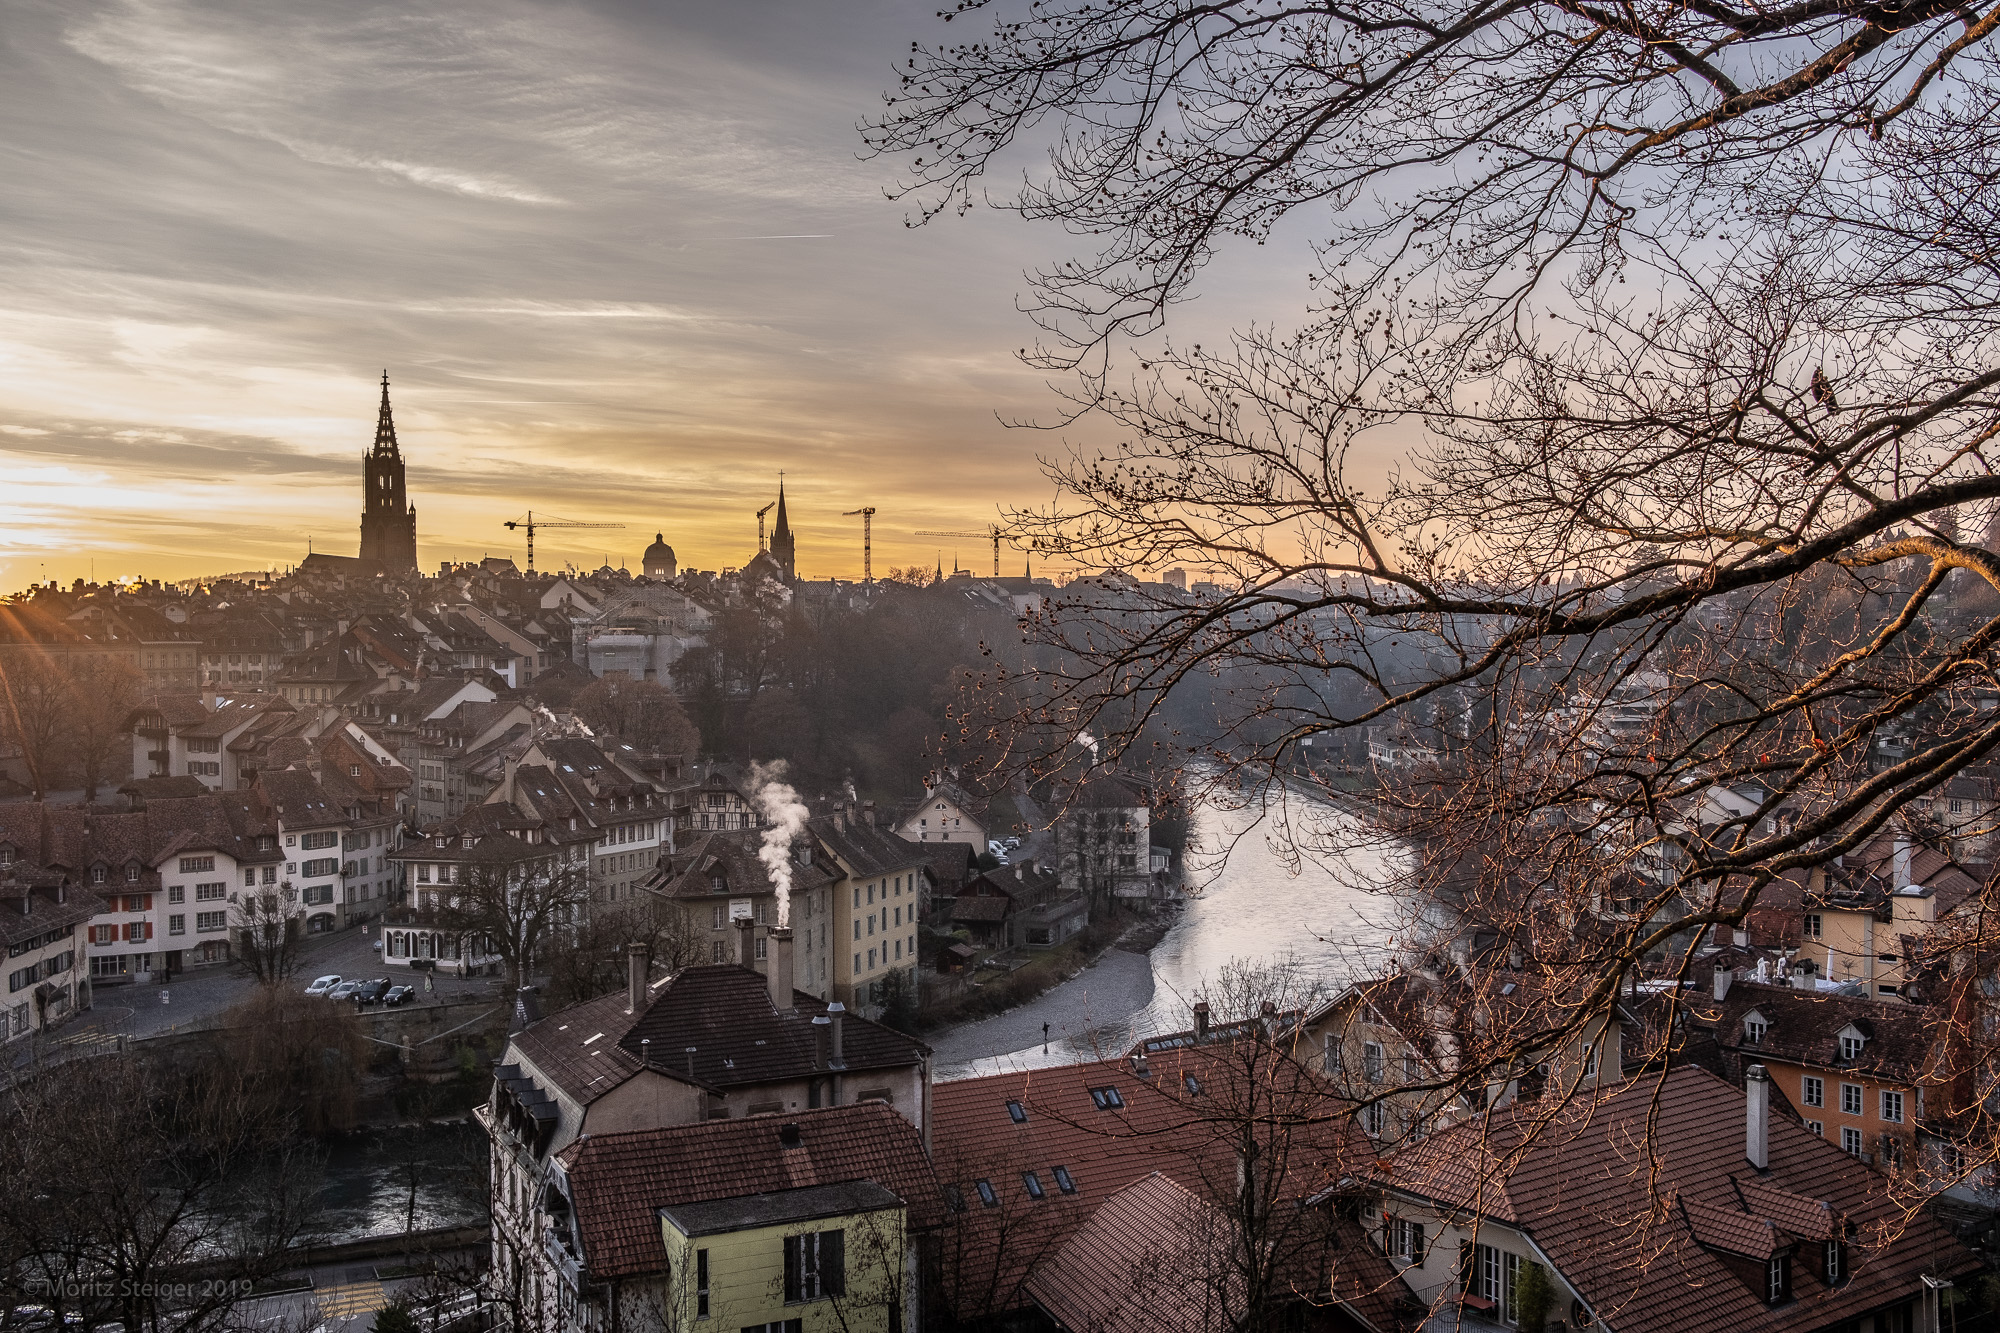 But first a few days in Bern. Bern at dusk.